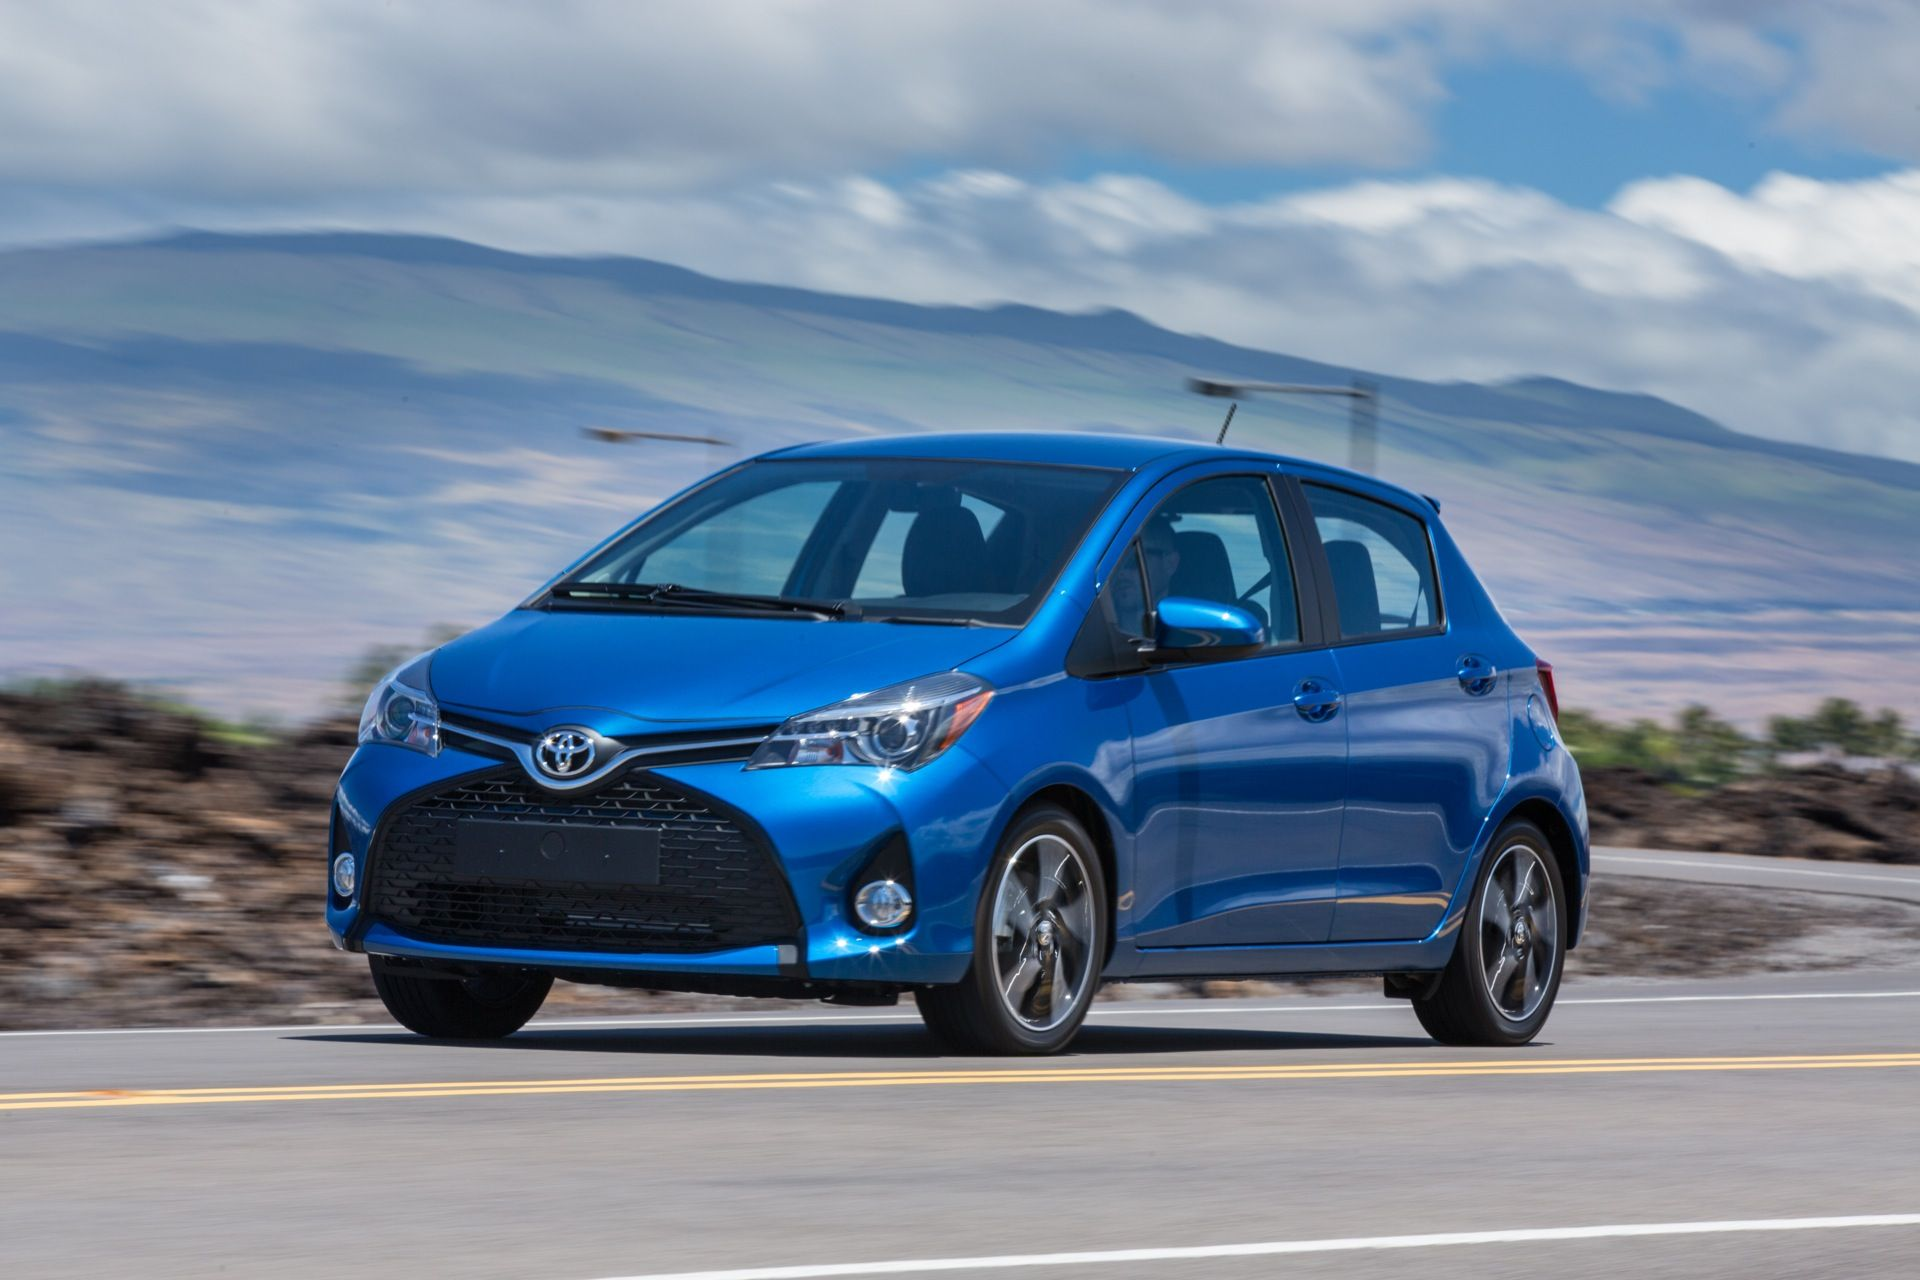 2016 toyota yaris sedan canada toyota pinterest toyota sedans and cars